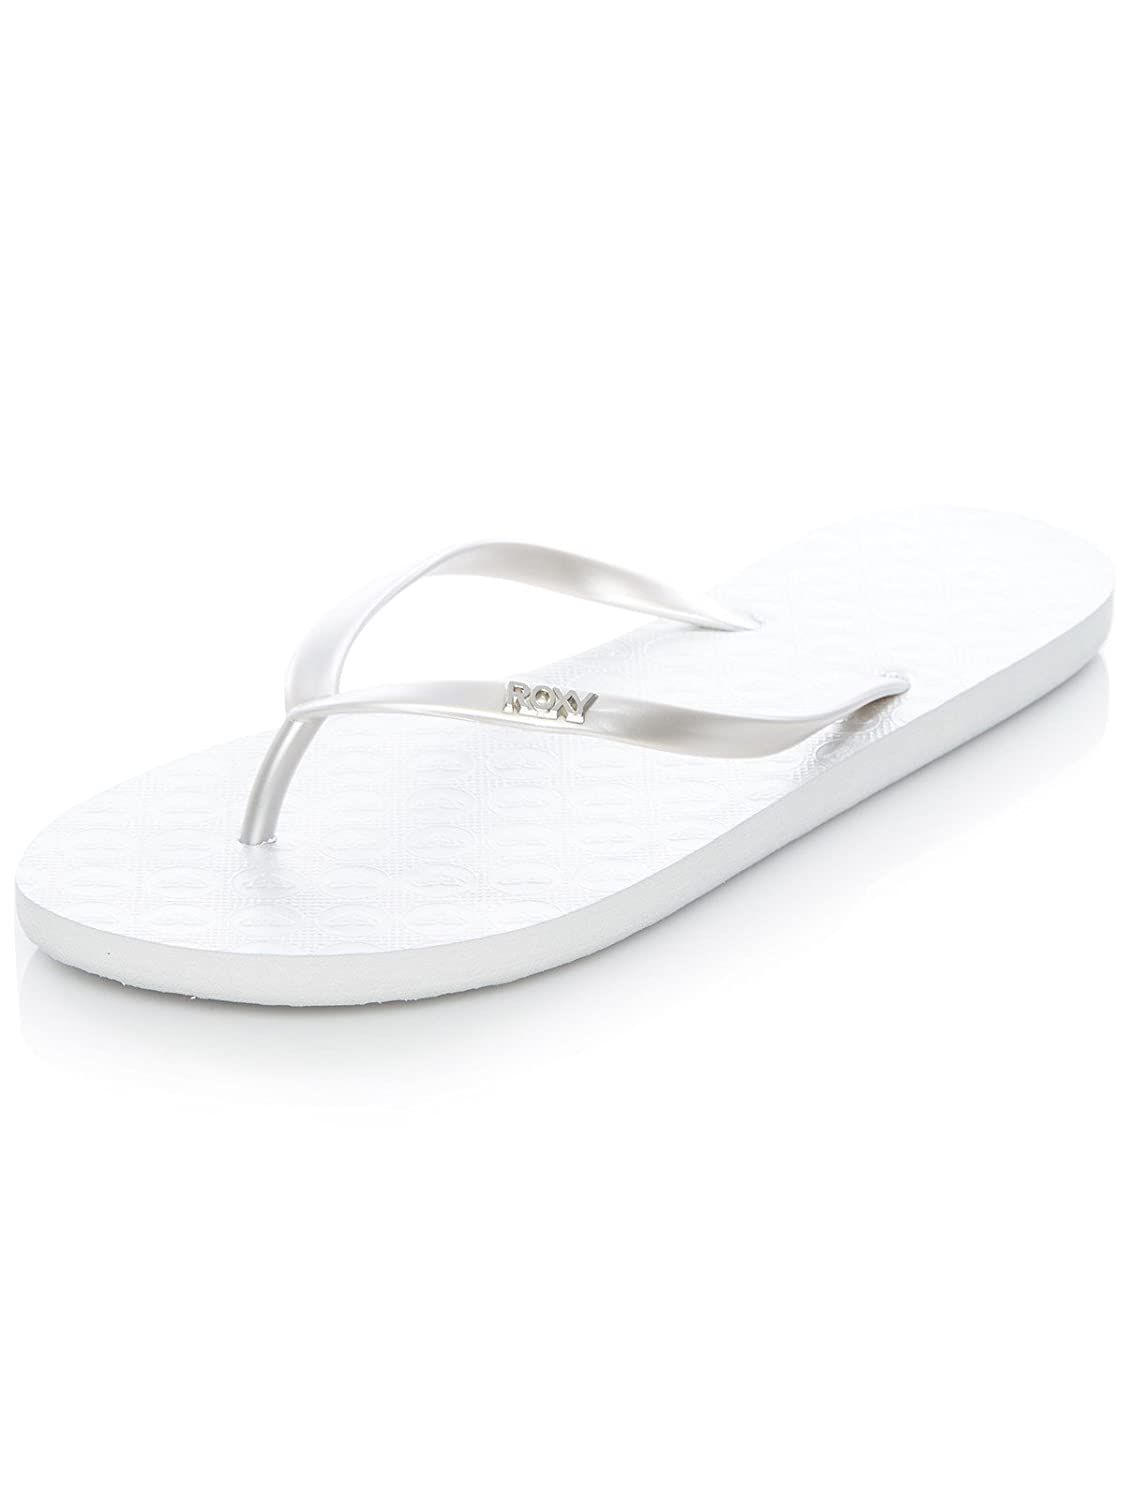 4f484c885da36 Roxy Silver Viva IV Womens Flip Flop  Roxy  Amazon.com.au  Fashion